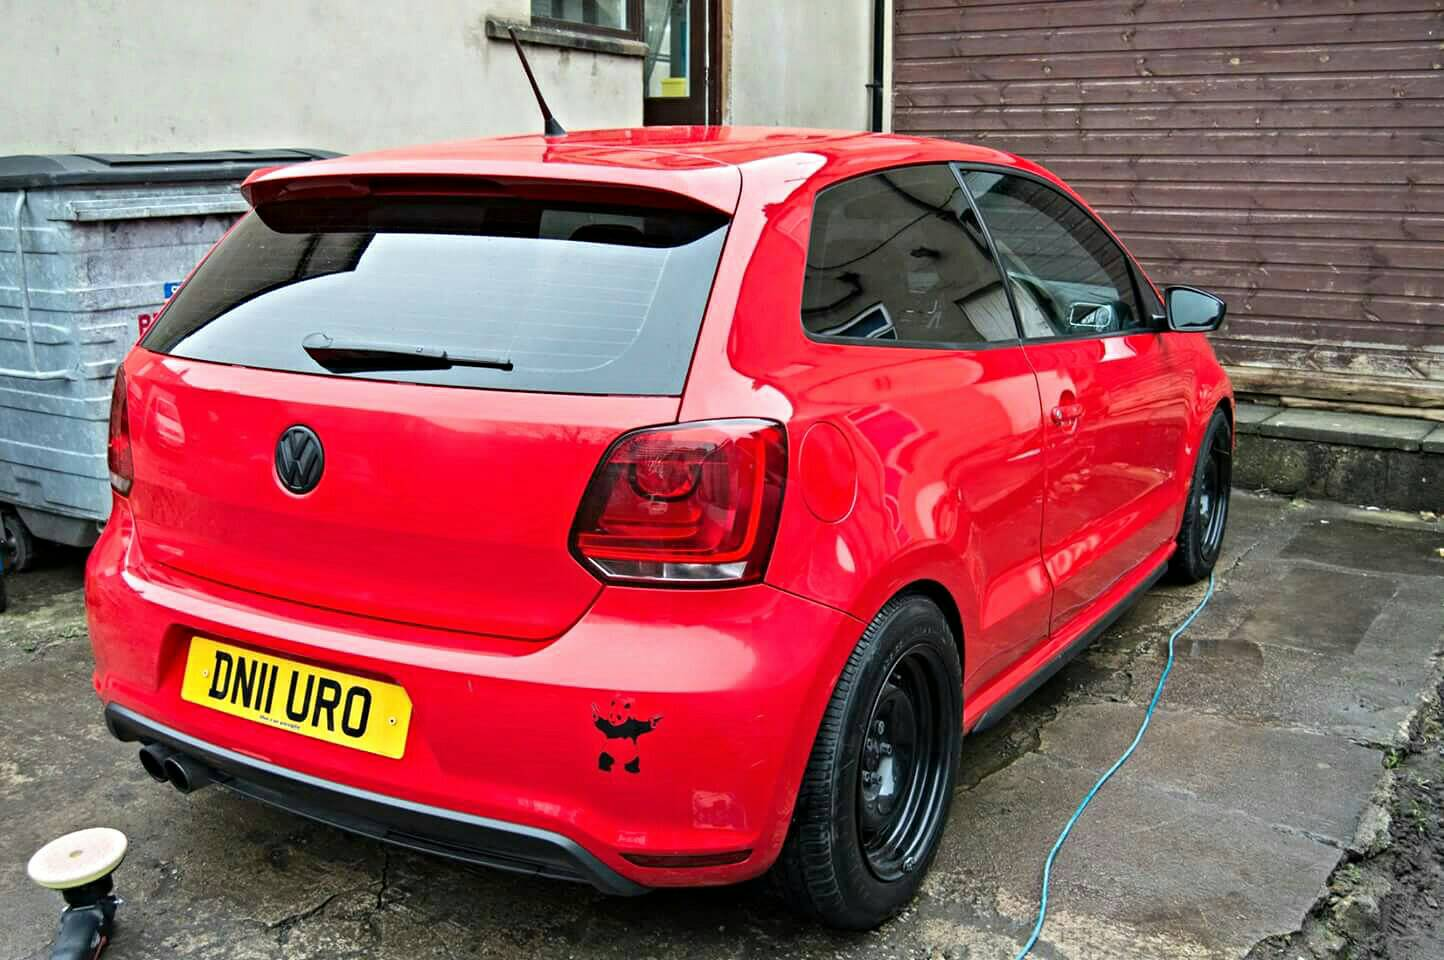 2011 polo gti 6r for sale uk polos net the vw polo forum. Black Bedroom Furniture Sets. Home Design Ideas